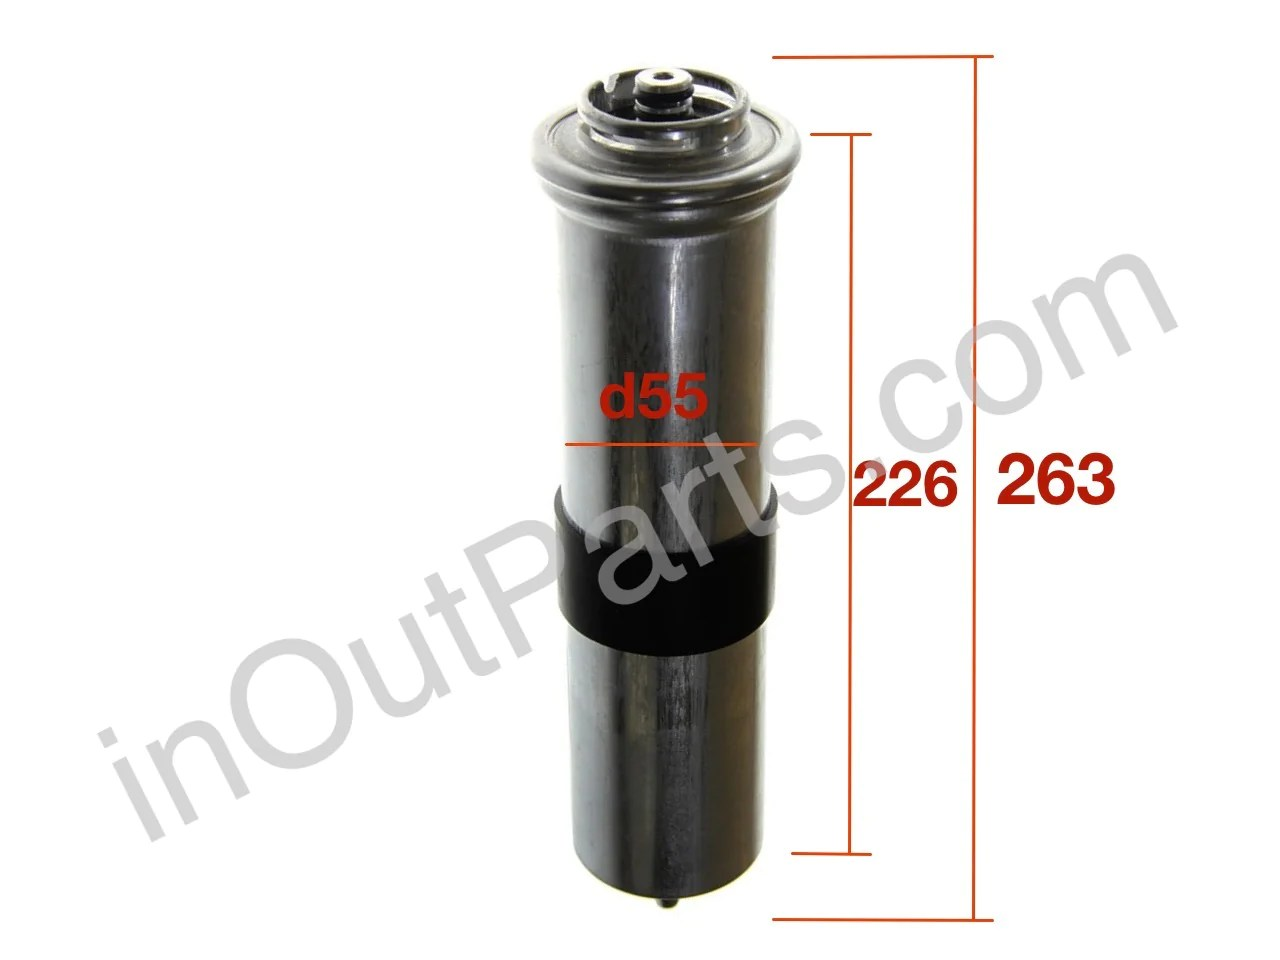 hight resolution of fuel filter fits bmw 3 series e90 2005 2013 x1 e84 2009 2016 x inout parts